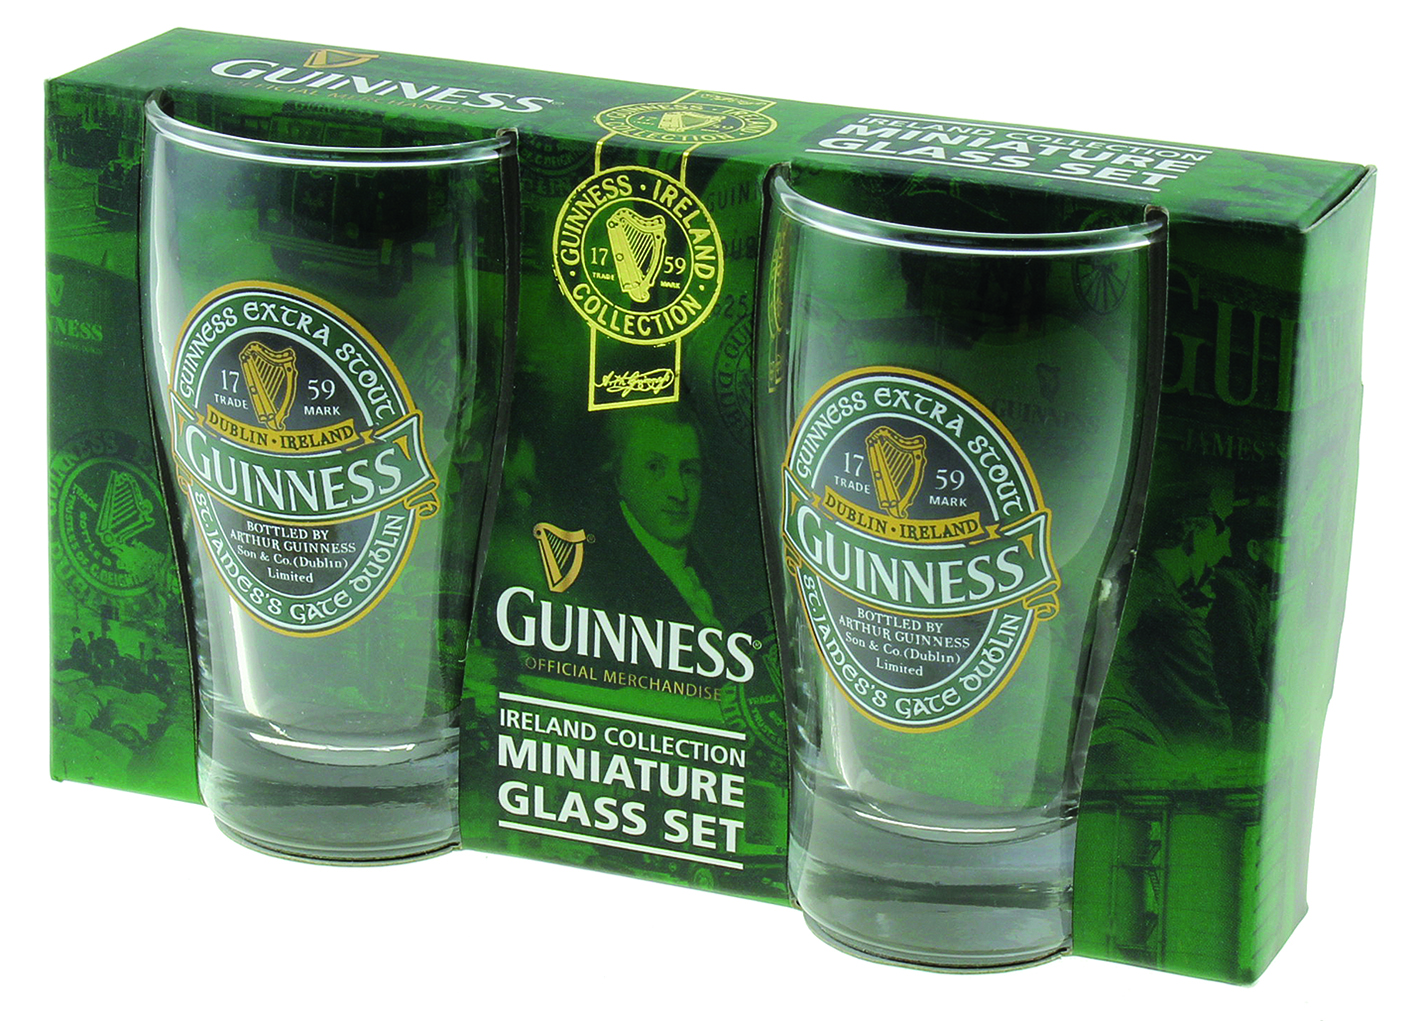 GUINNESS® GREEN COLLECTION MINIATURE GLASS SET OF 2